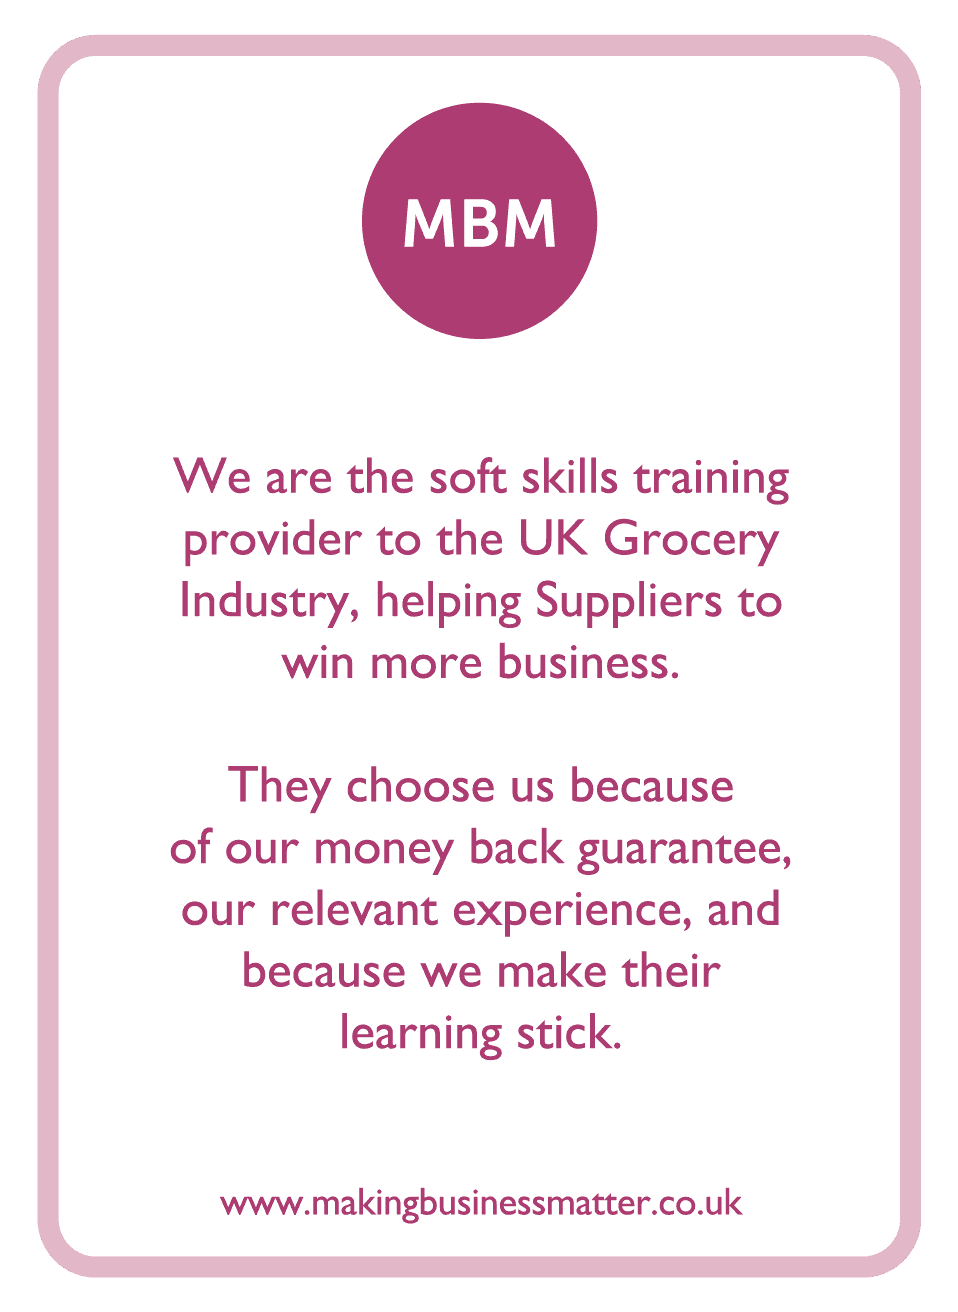 Coaching card with MBM logo and brand information